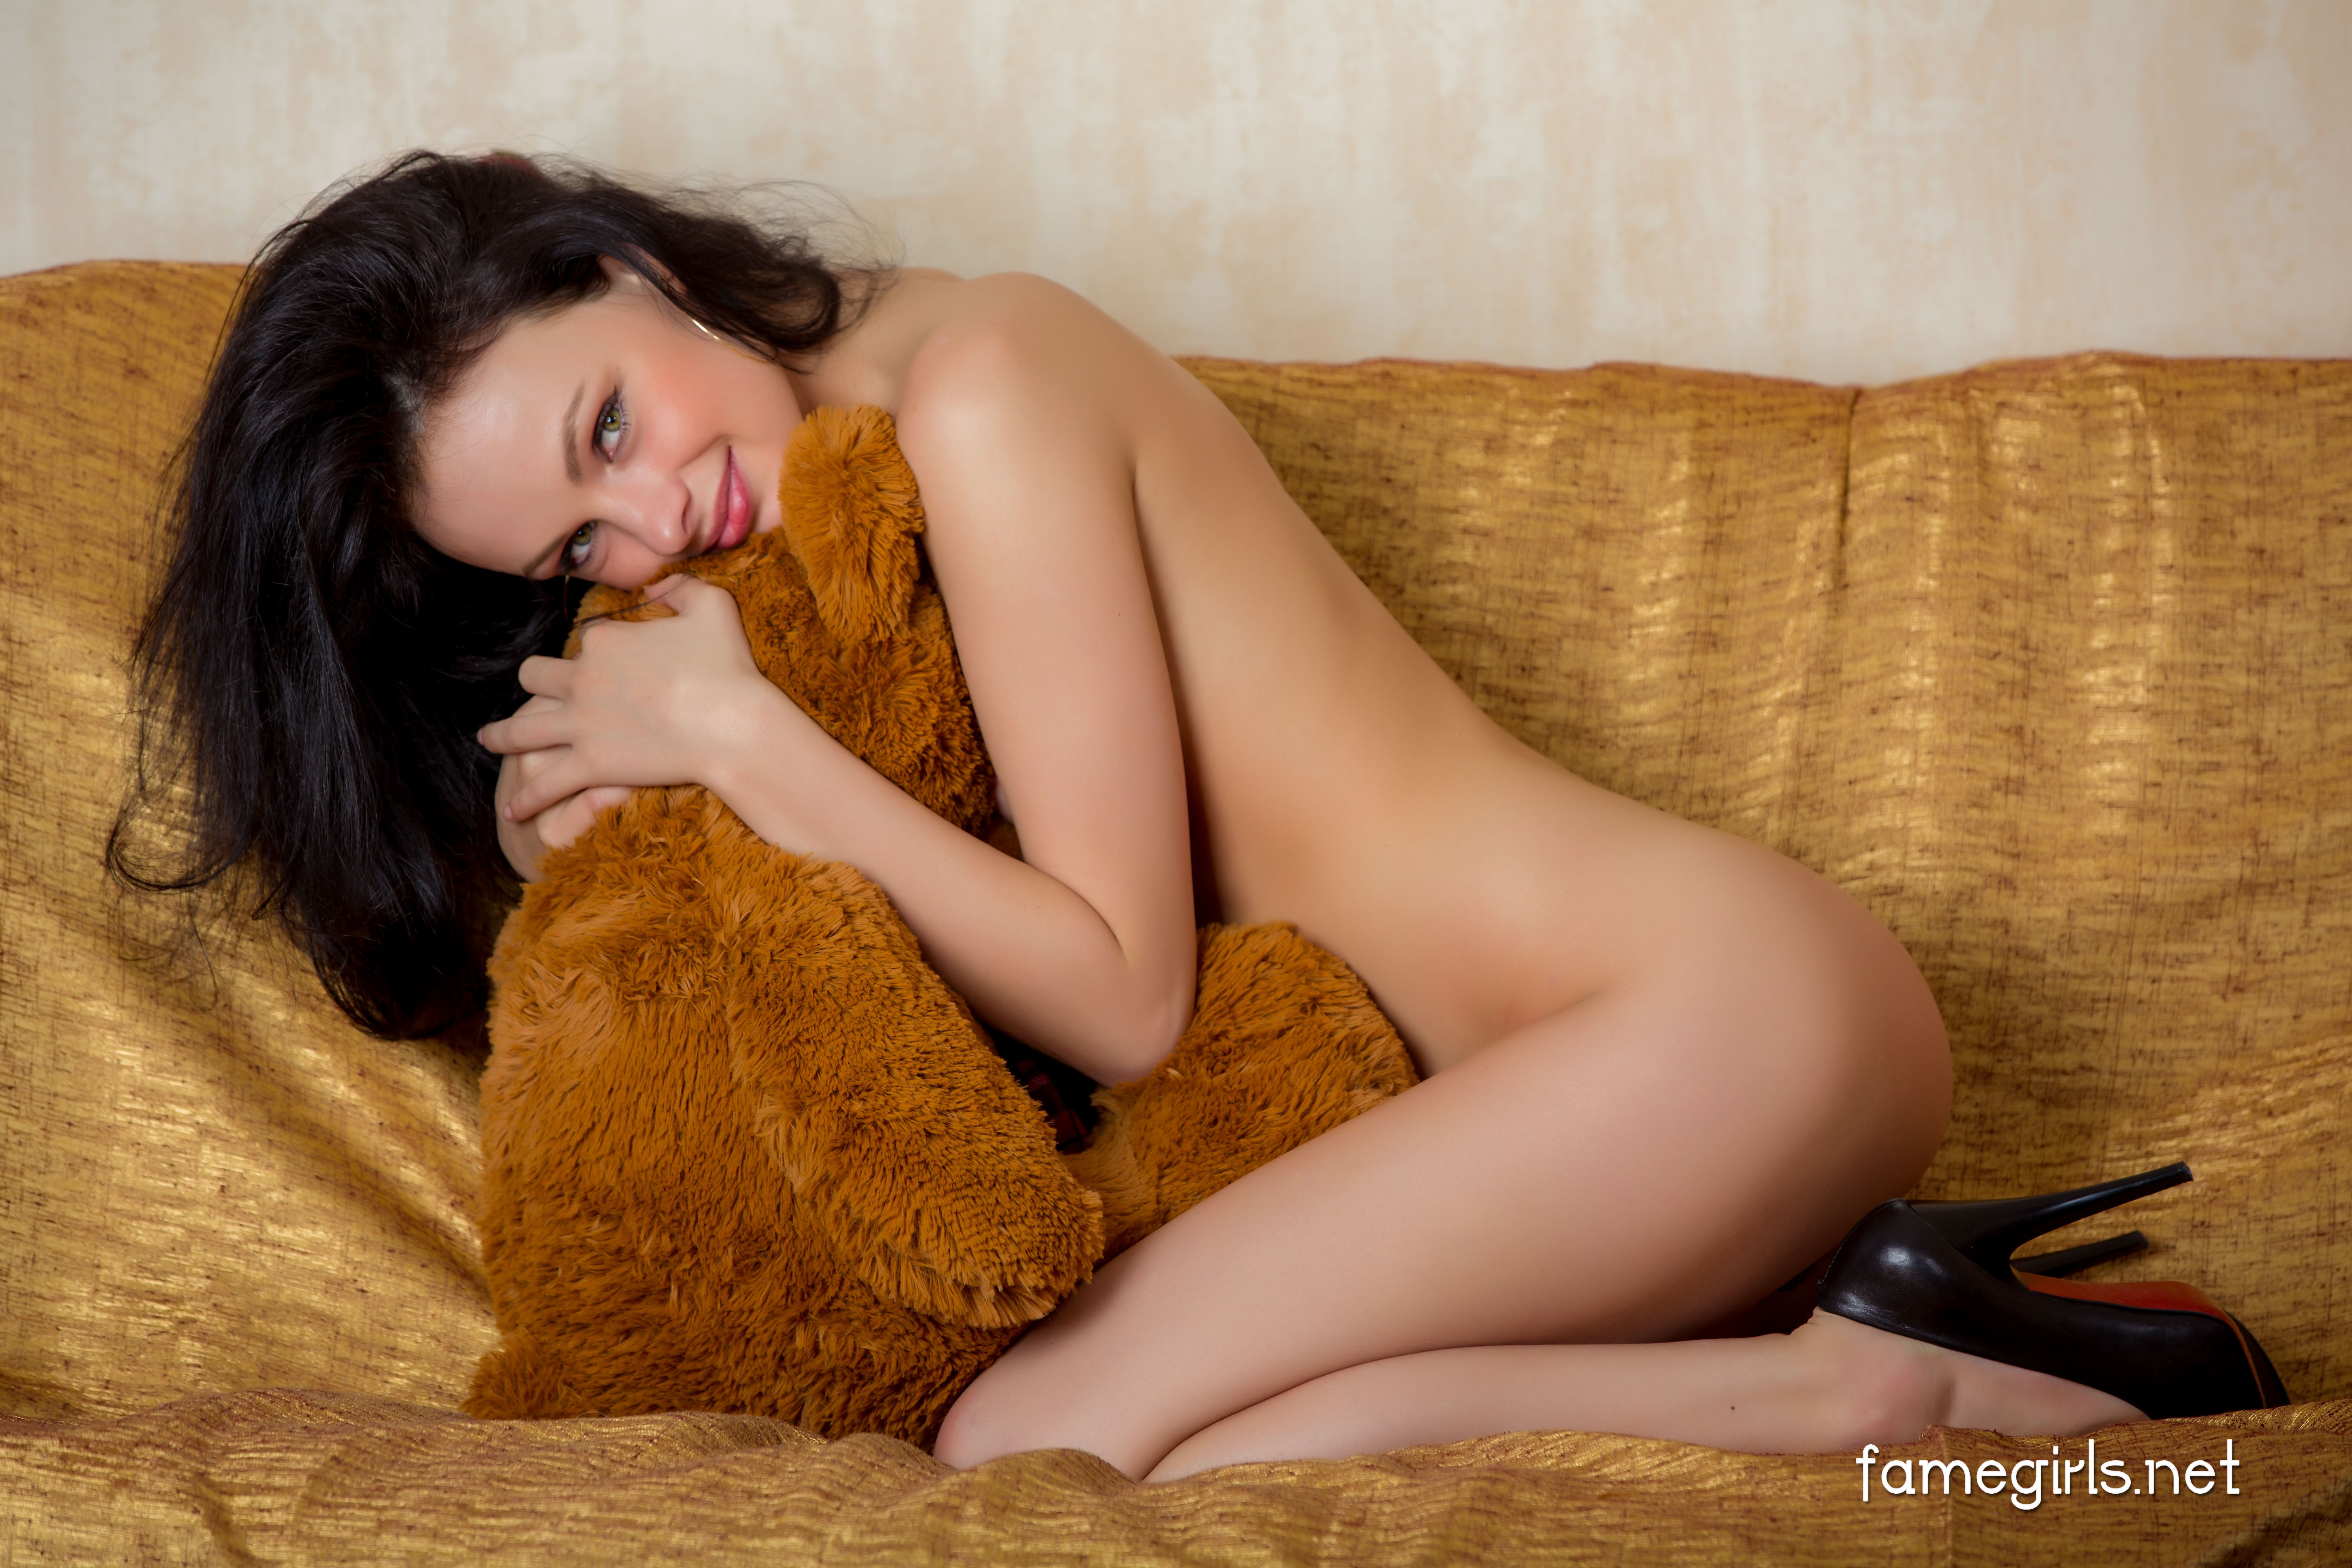 Teddy bear girl with pigtails fucked 2